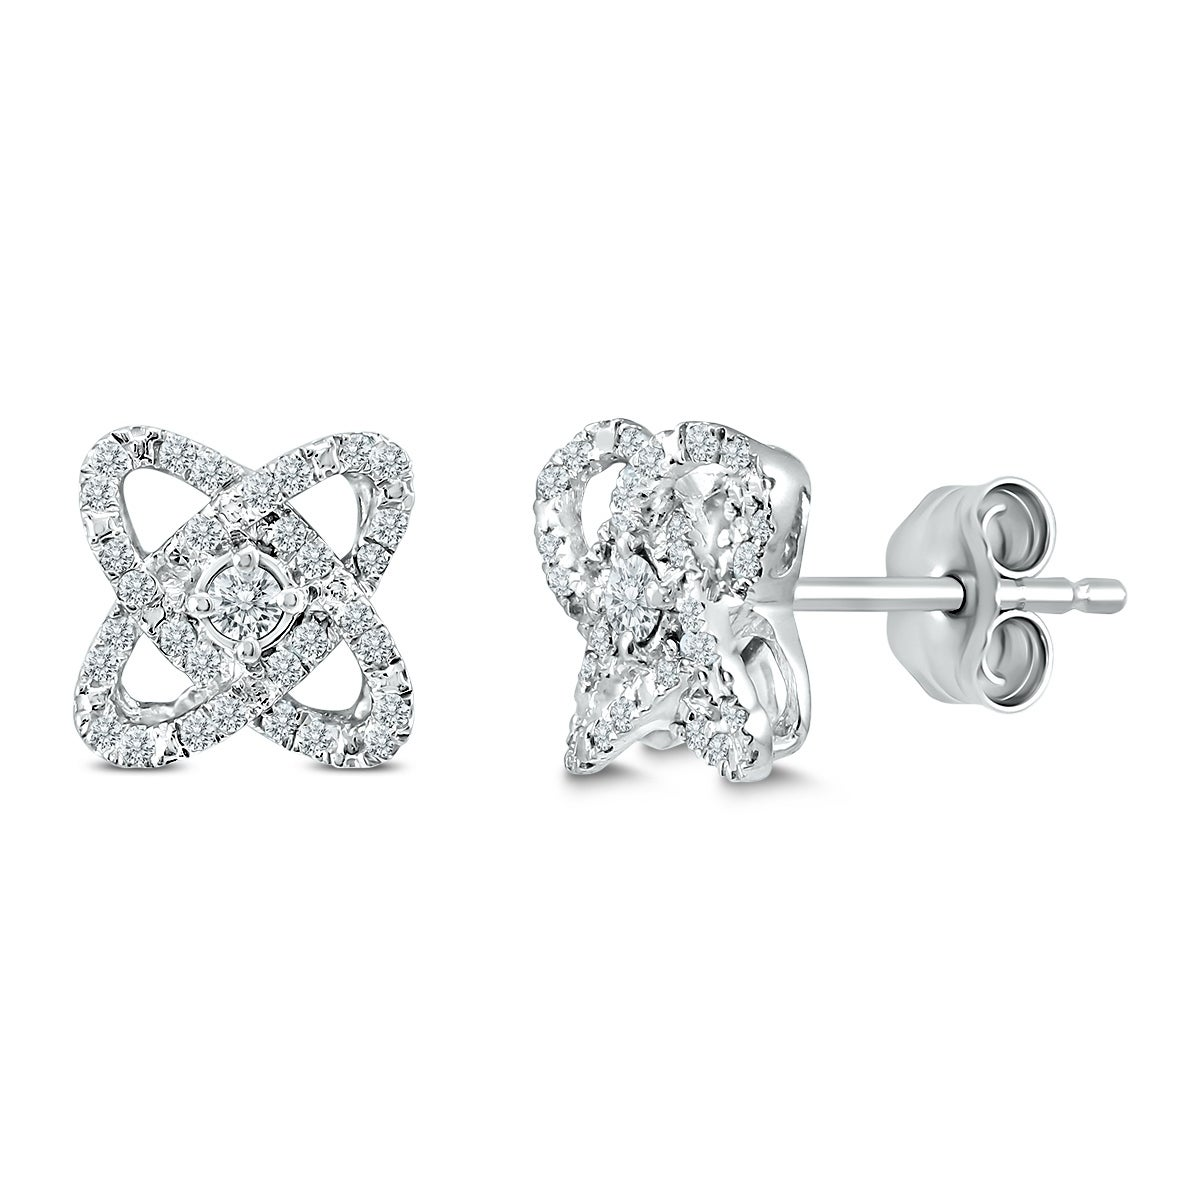 1//2 Carat TW Round Solitaire Diamond Stud Earrings in .925 Sterling Silver